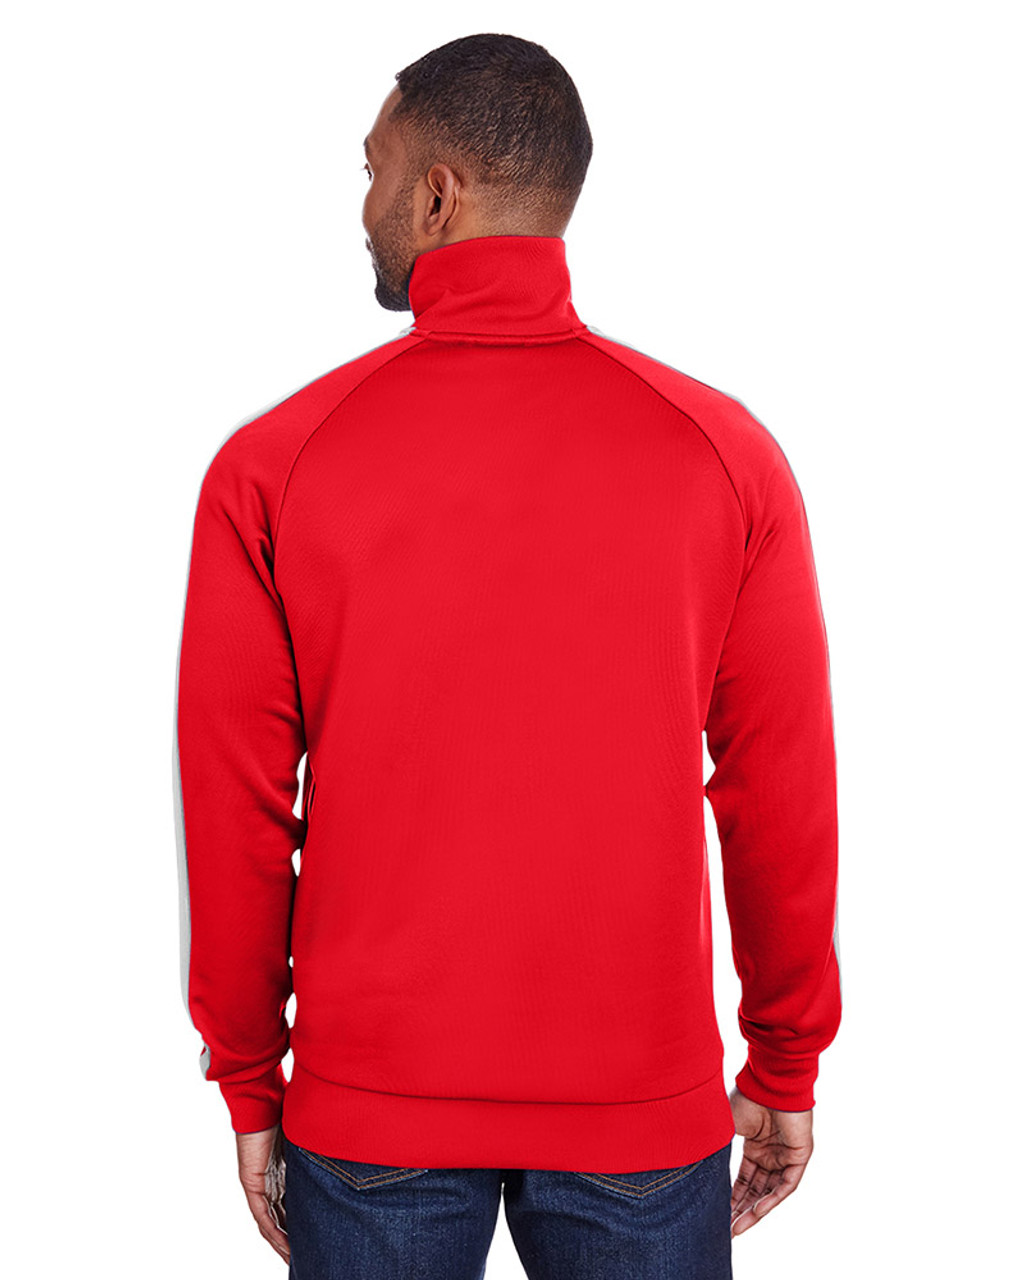 High Risk Red/Puma White - back, 582364 Puma Sport Adult Iconic T7 Track Sweatshirt | Blankclothing.ca